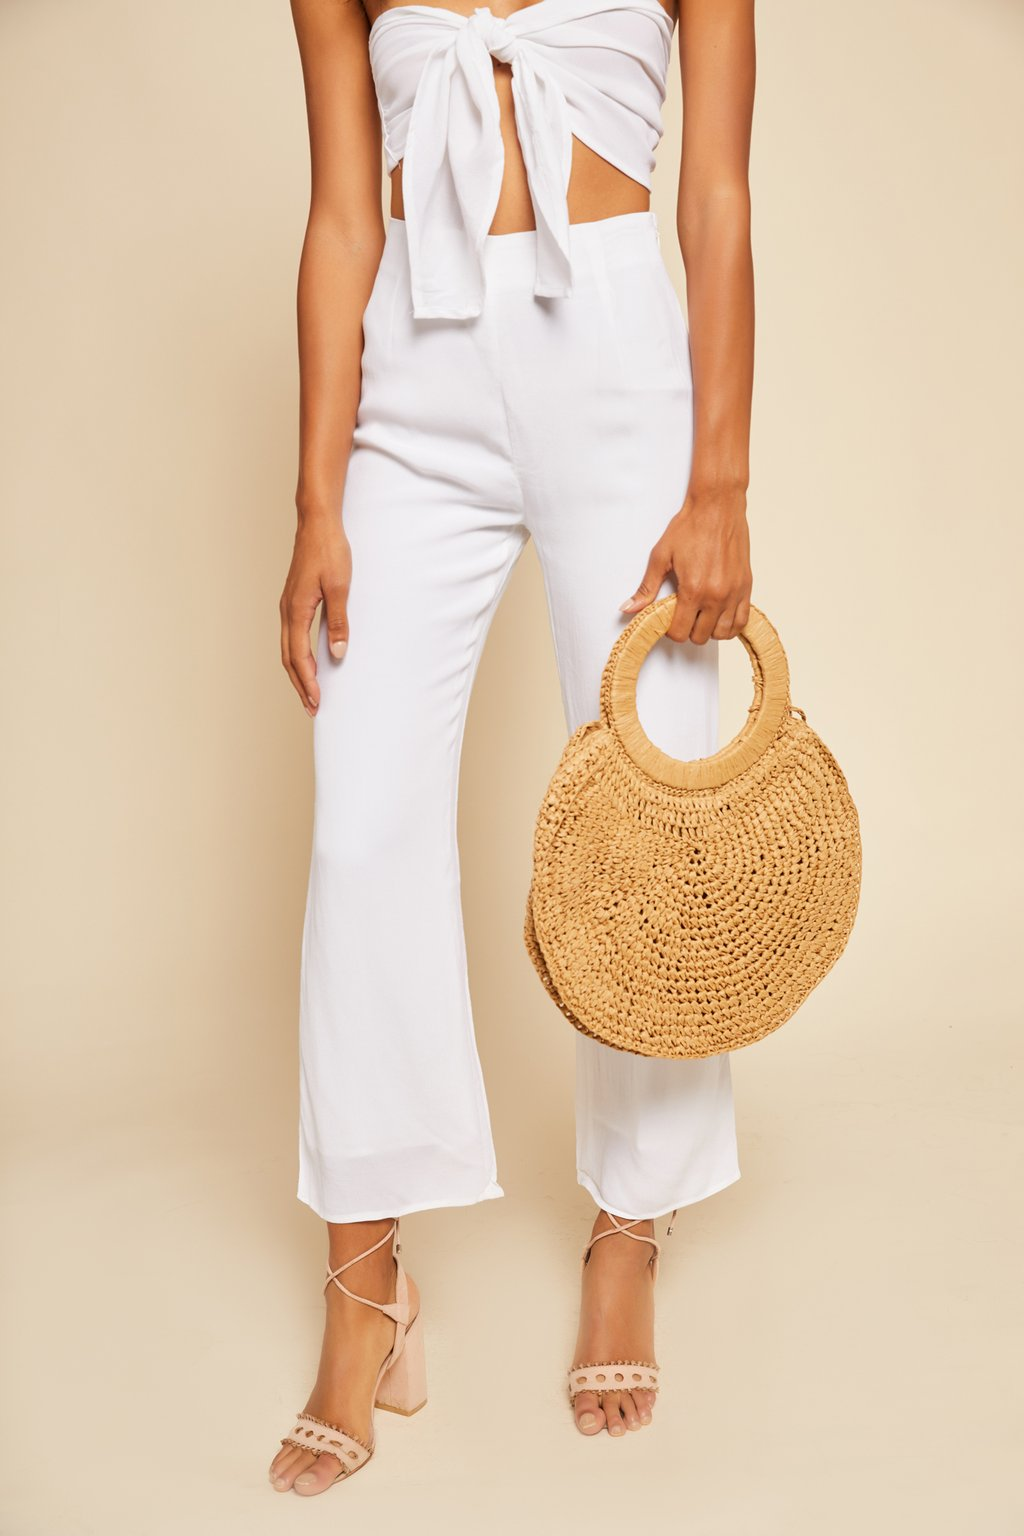 Maldives White Pants - $68